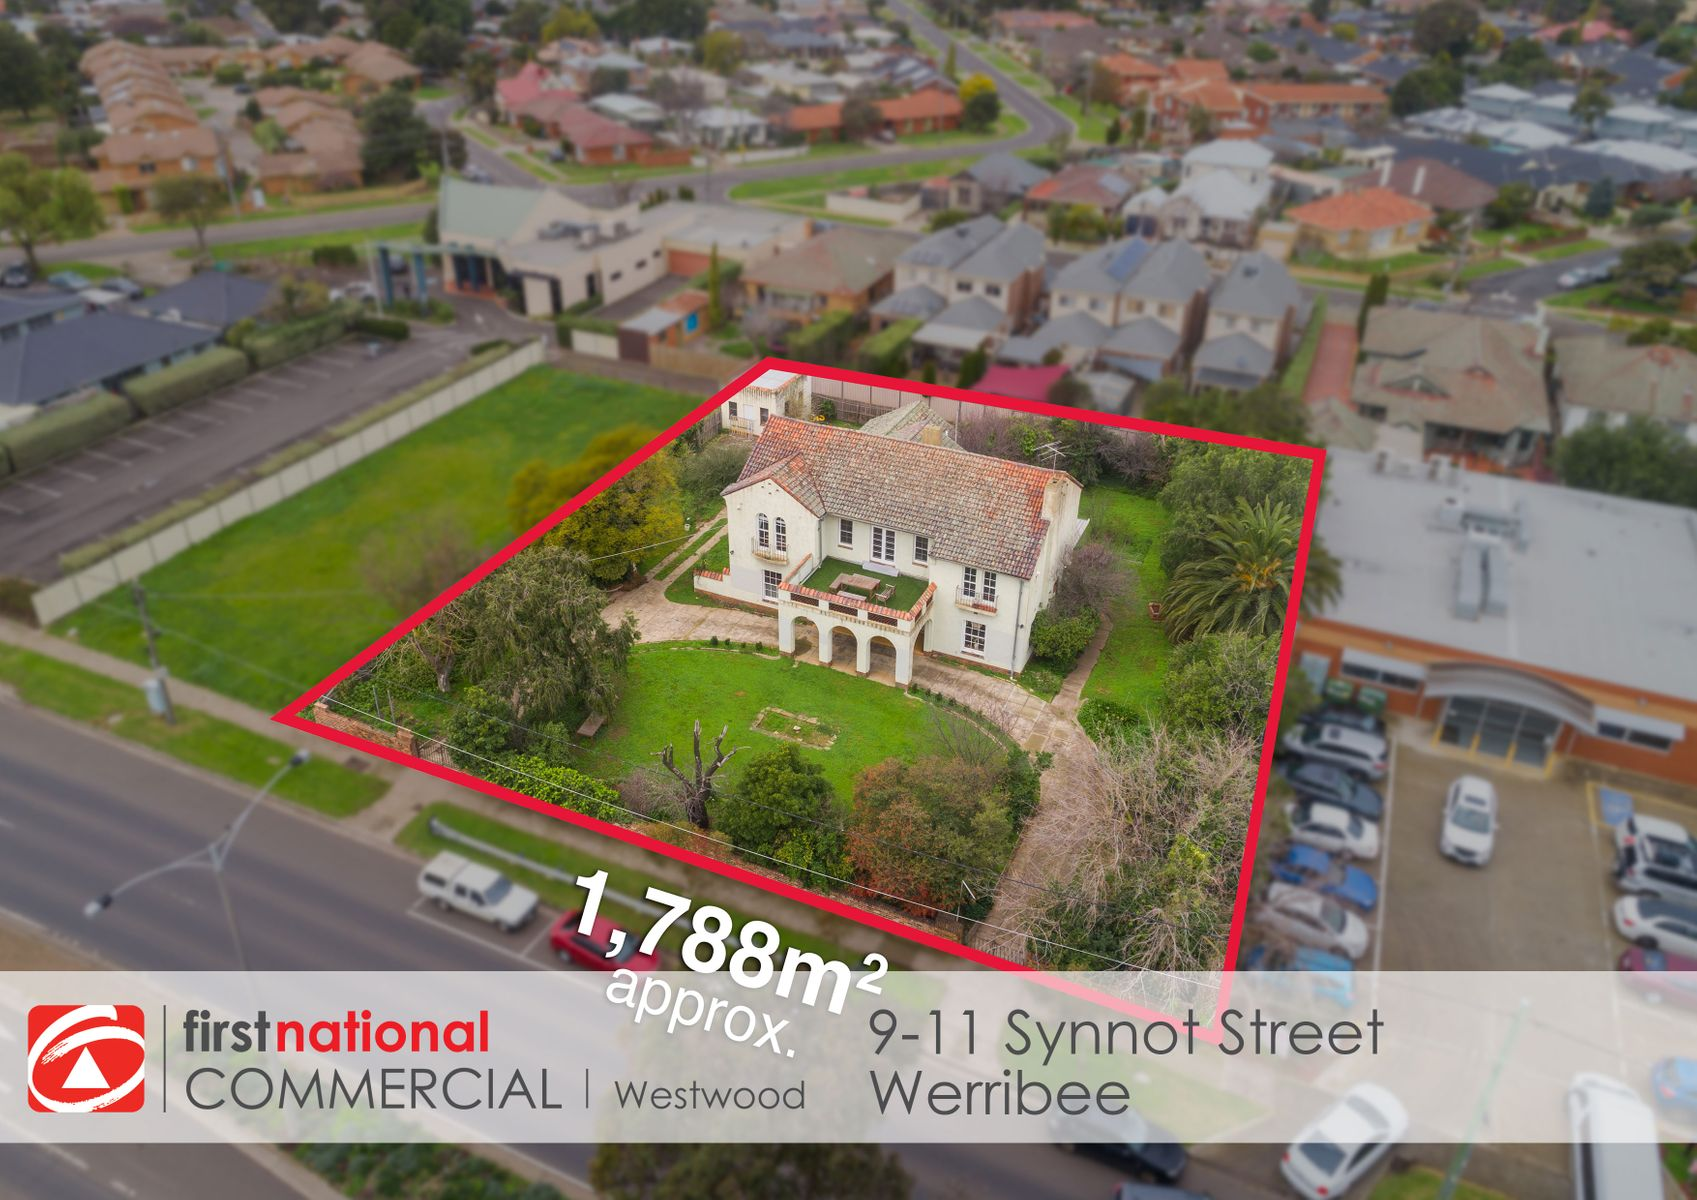 9-11 Synnot Street, Werribee, VIC 3030